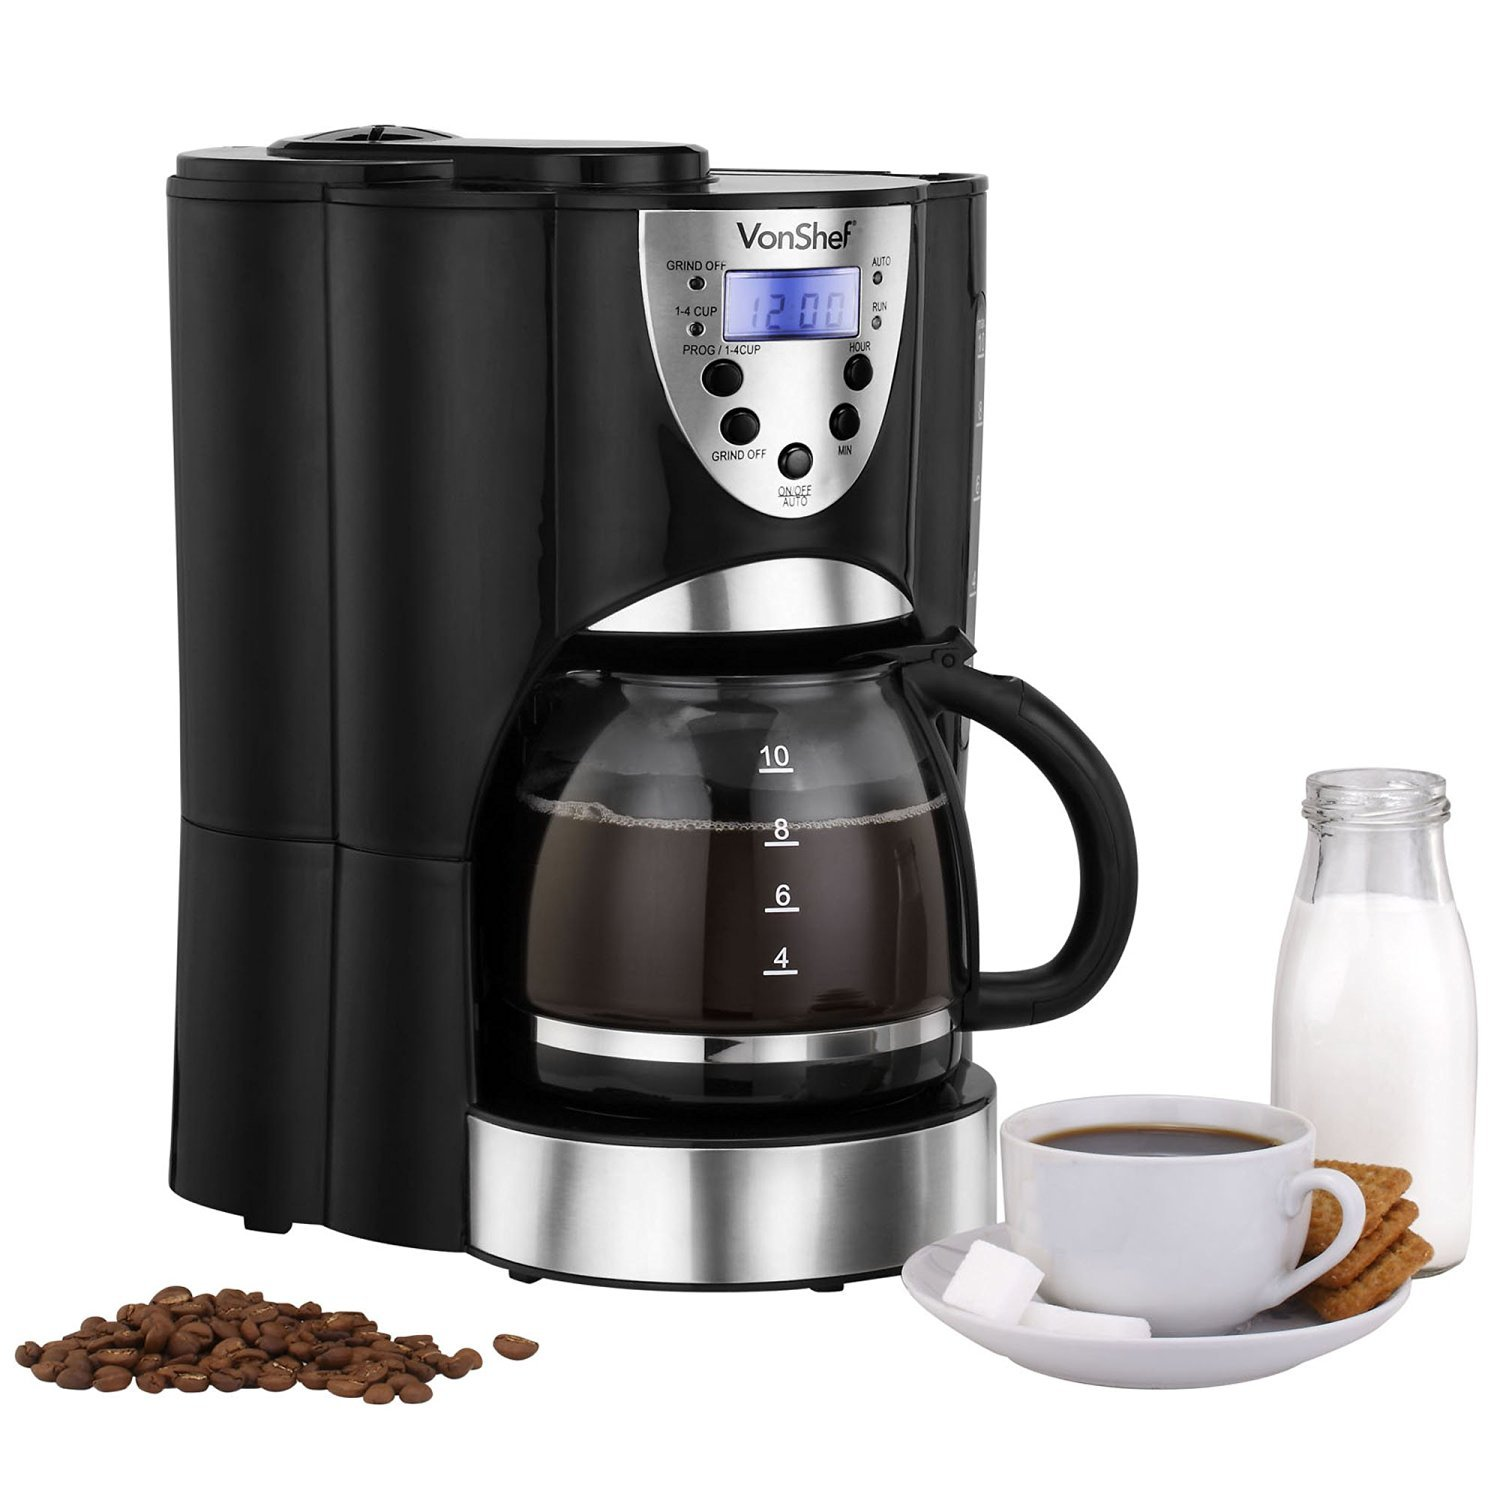 Programmable Filter Coffee Maker : VonShef 220-Volt Digital Programmable Coffee Maker with Built-in Grinder